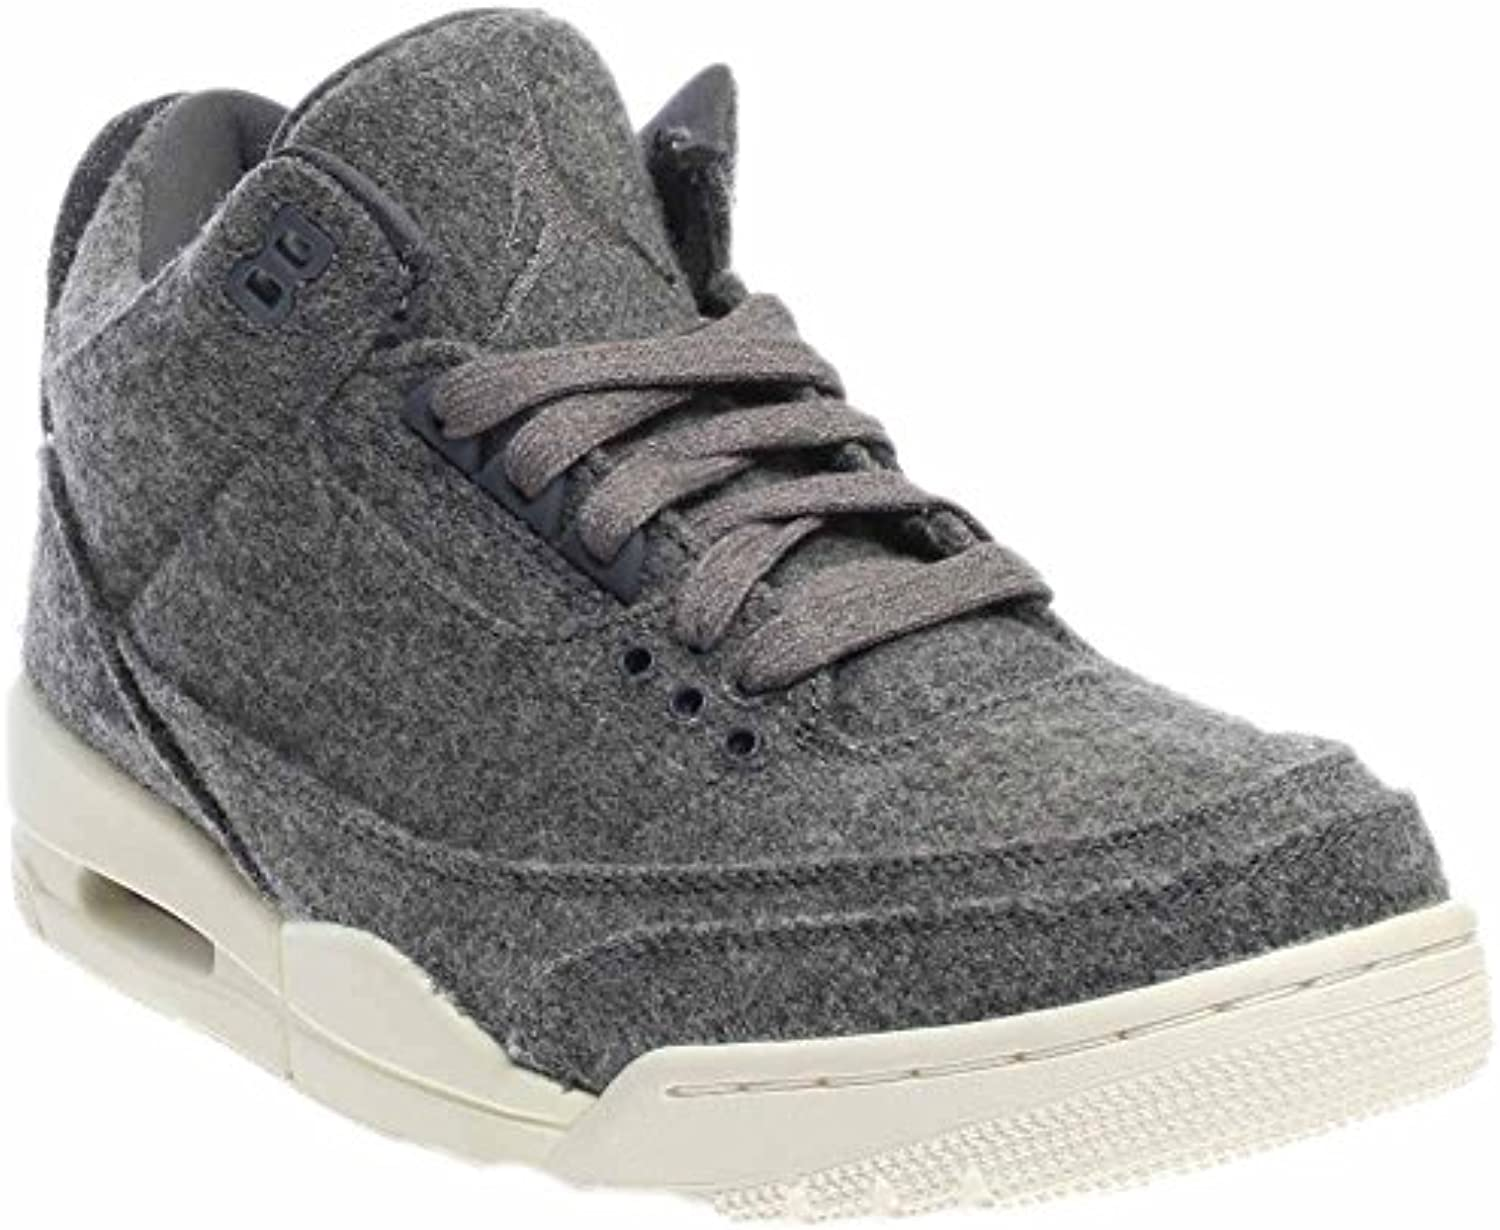 Jordan Nike Men's Air 3 Retro Wool Basketball Shoe